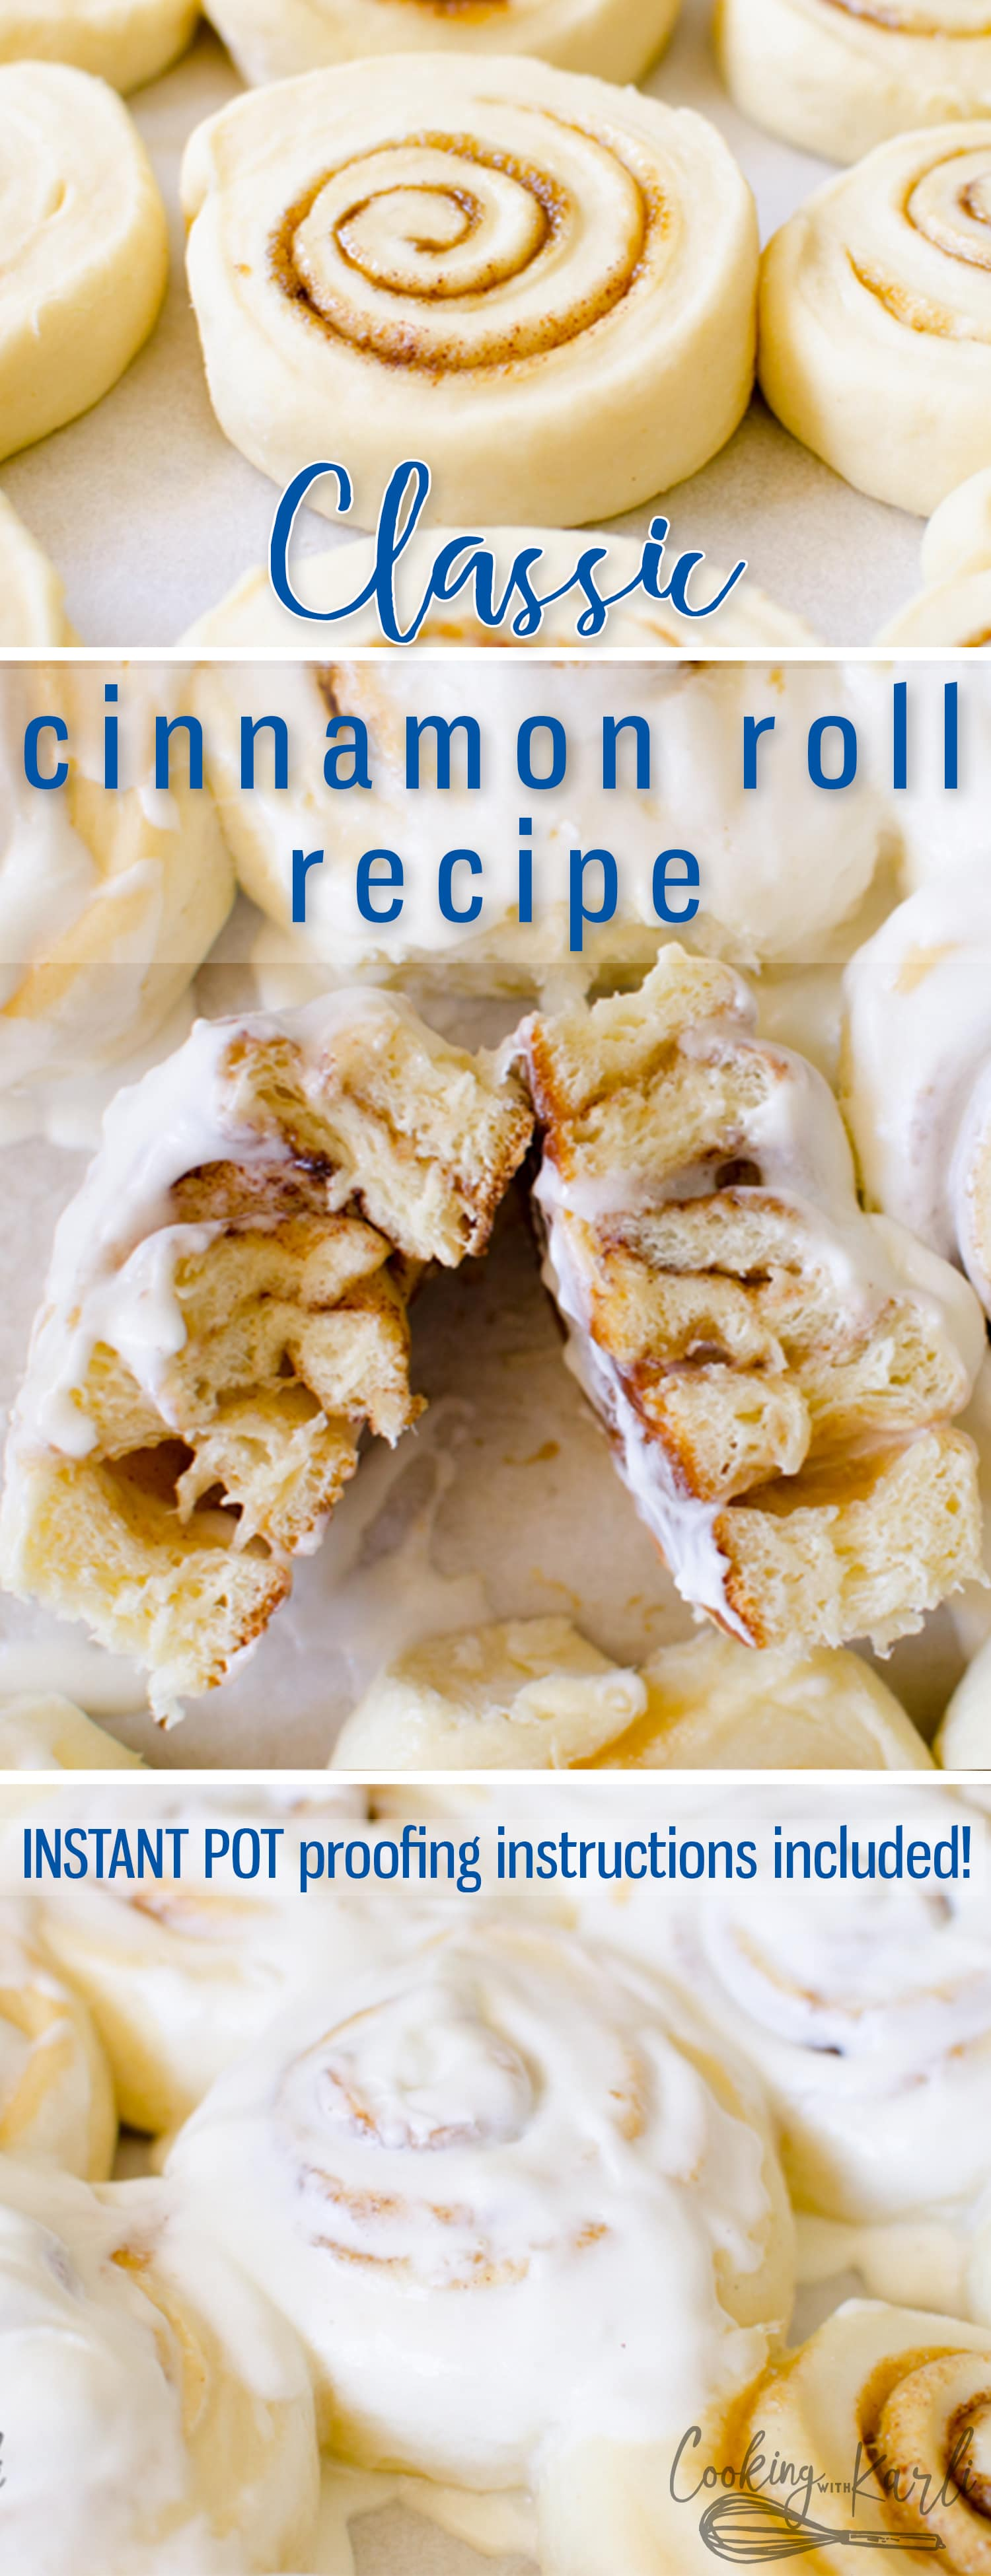 This Cinnamon Roll Recipe is a classic, fluffy and soft Cinnamon Roll drenched in Vanilla Buttercream Icing. This recipe can make a dozen giant cinnamon rolls or up to two dozen regular sized rolls. These mouth-watering sweet rolls are perfect for Mother's Day, Christmas morning or, ya know, any morning. |Cooking with Karli| #cinnamonroll #sweetroll #classic #instantpot #fastrise #quick #recipe